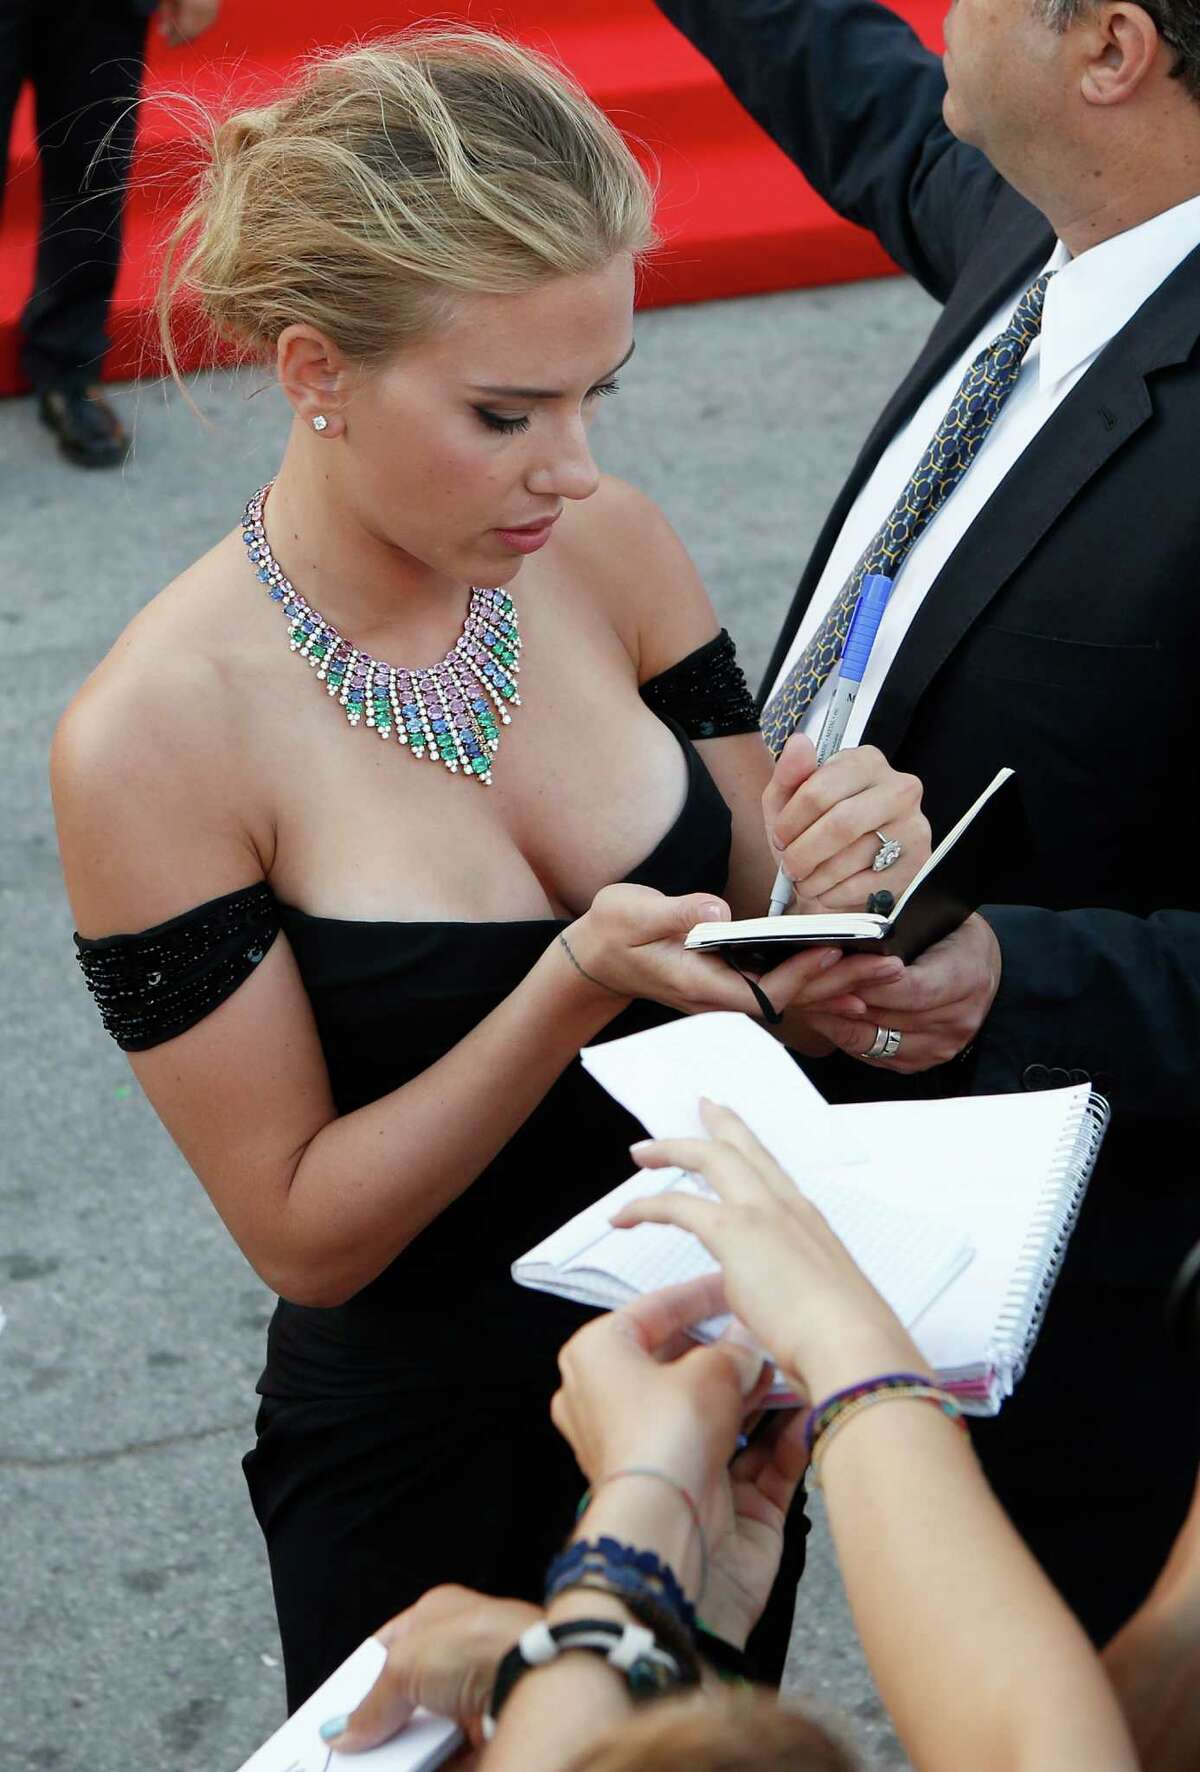 Actress Scarlett Johansson signs autographs for members of the public as she arrives on the red carpet for the screening of the film Under The Skin at the 70th edition of the Venice Film Festival held from Aug. 28 through Sept. 7, in Venice, Italy, Tuesday, Sept. 3, 2013.